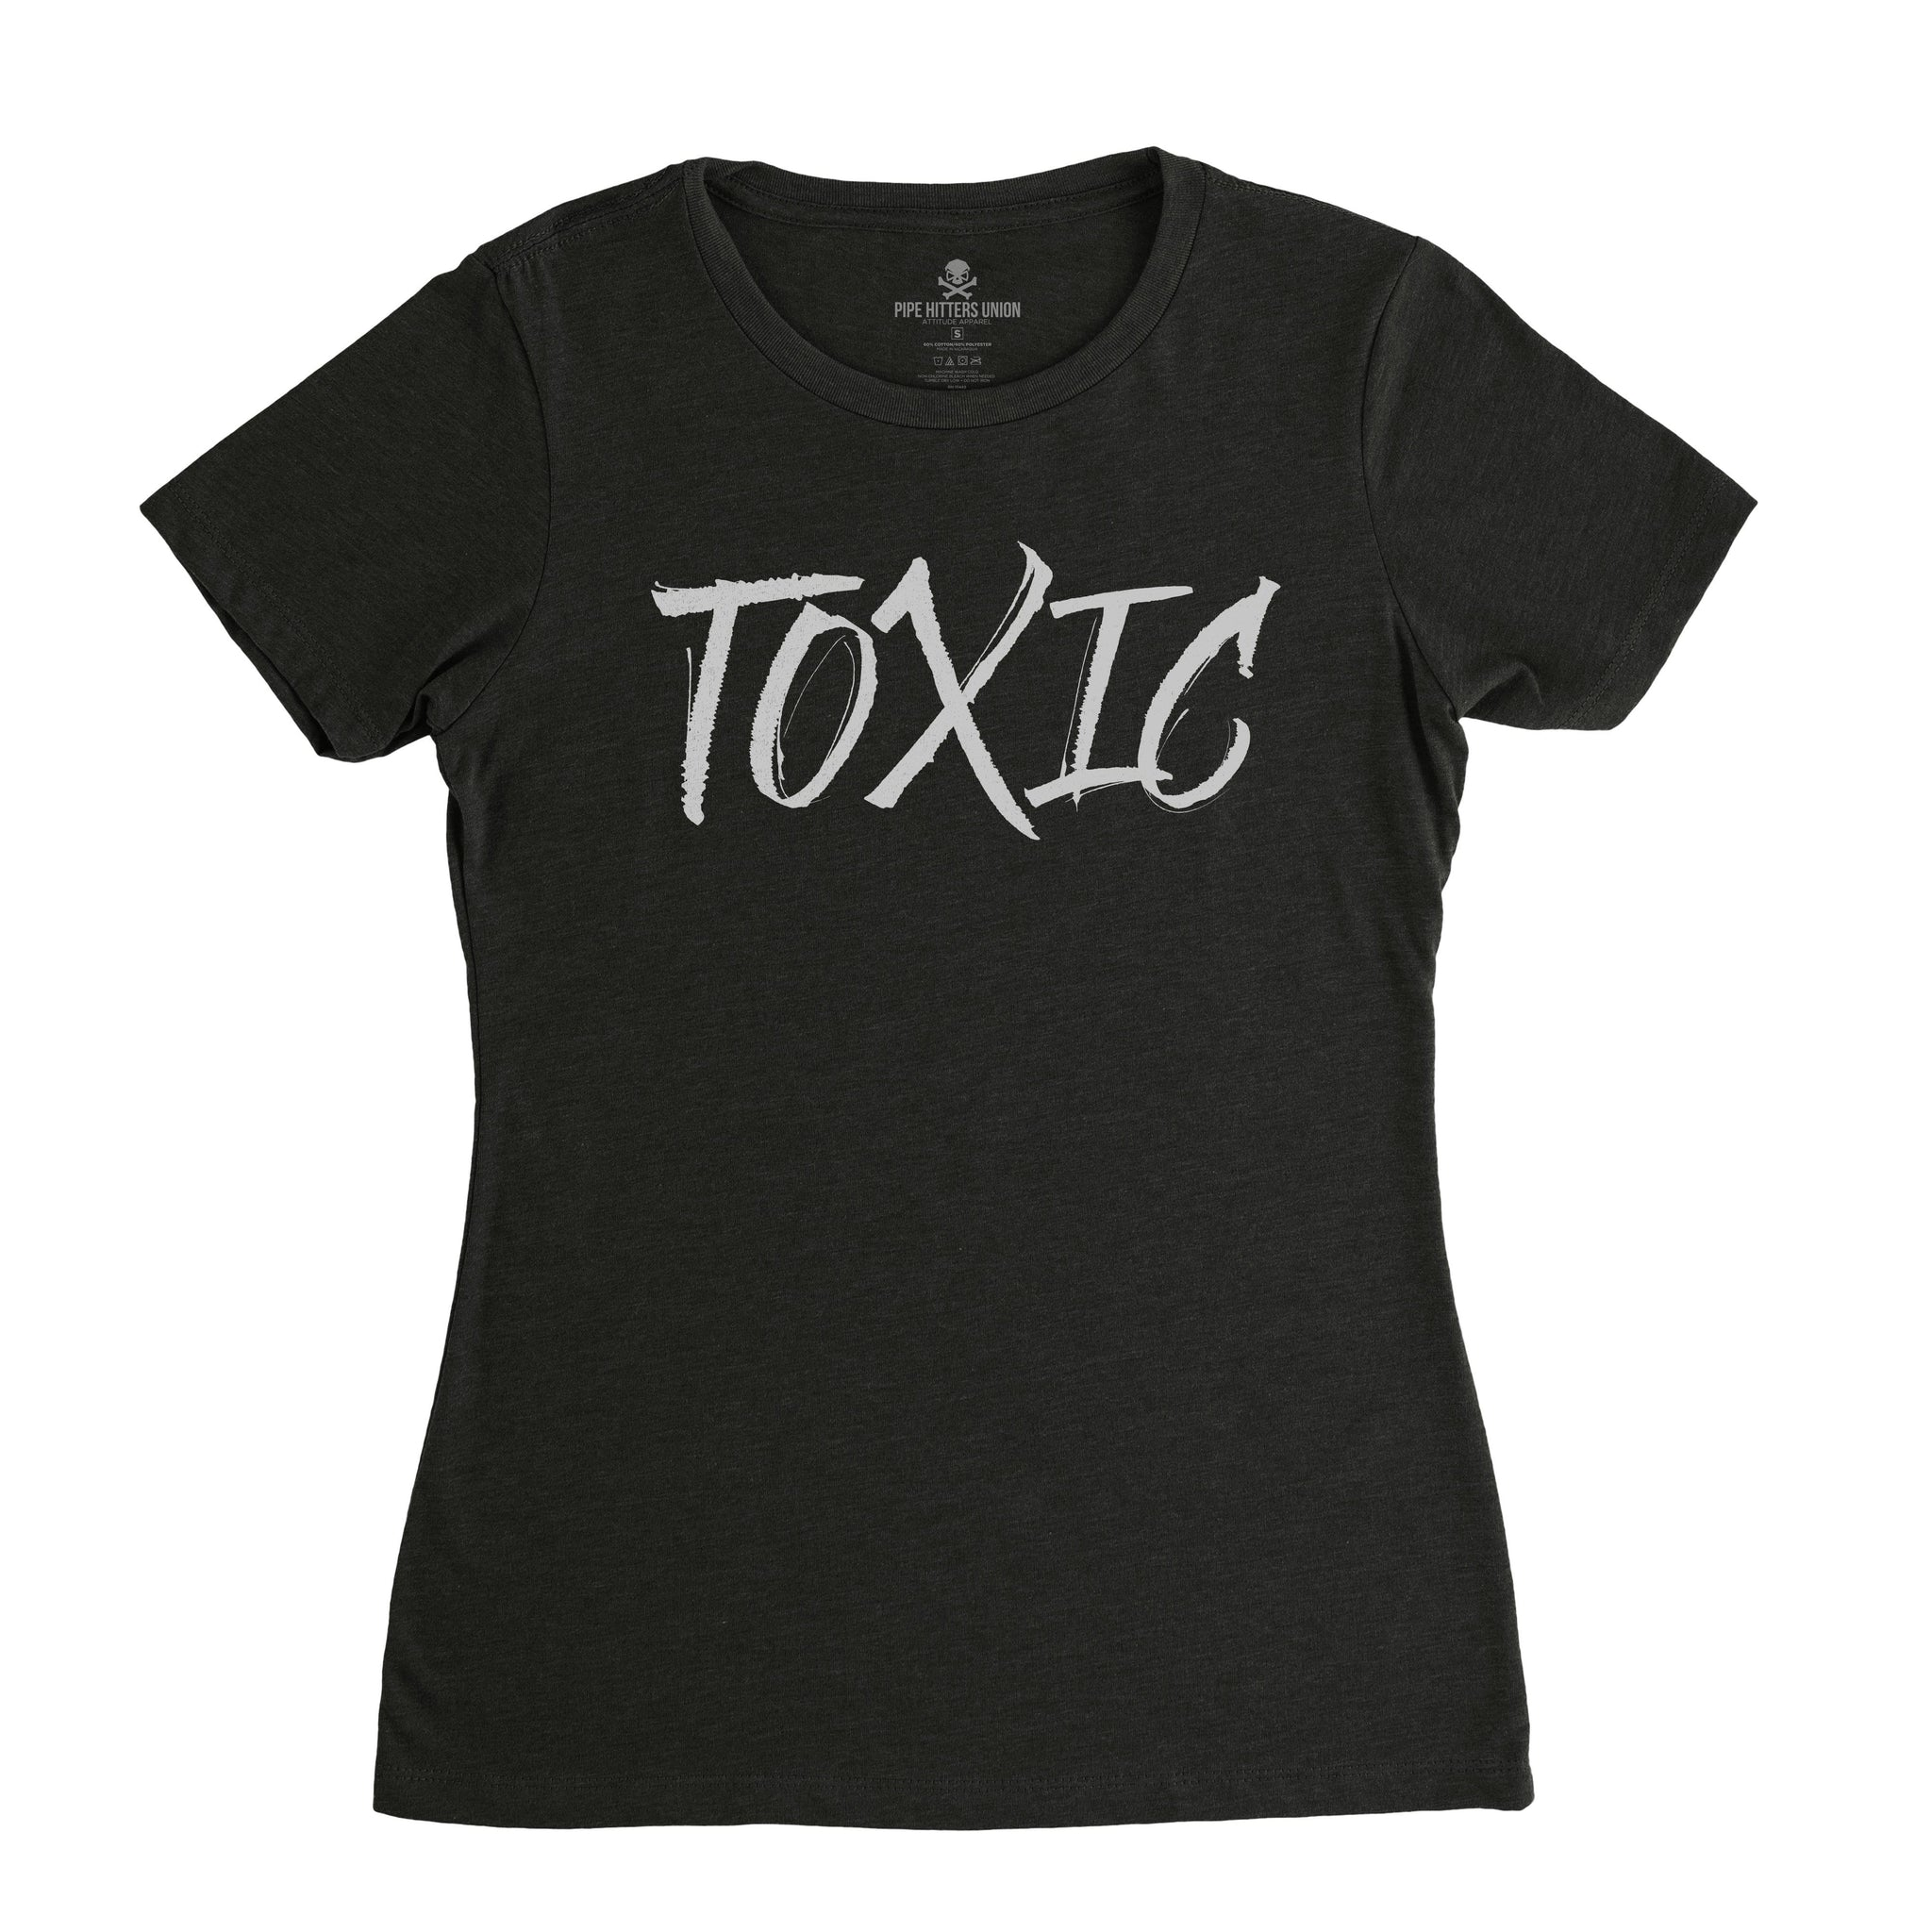 Toxic (Crew) -  - T-Shirts - Pipe Hitters Union